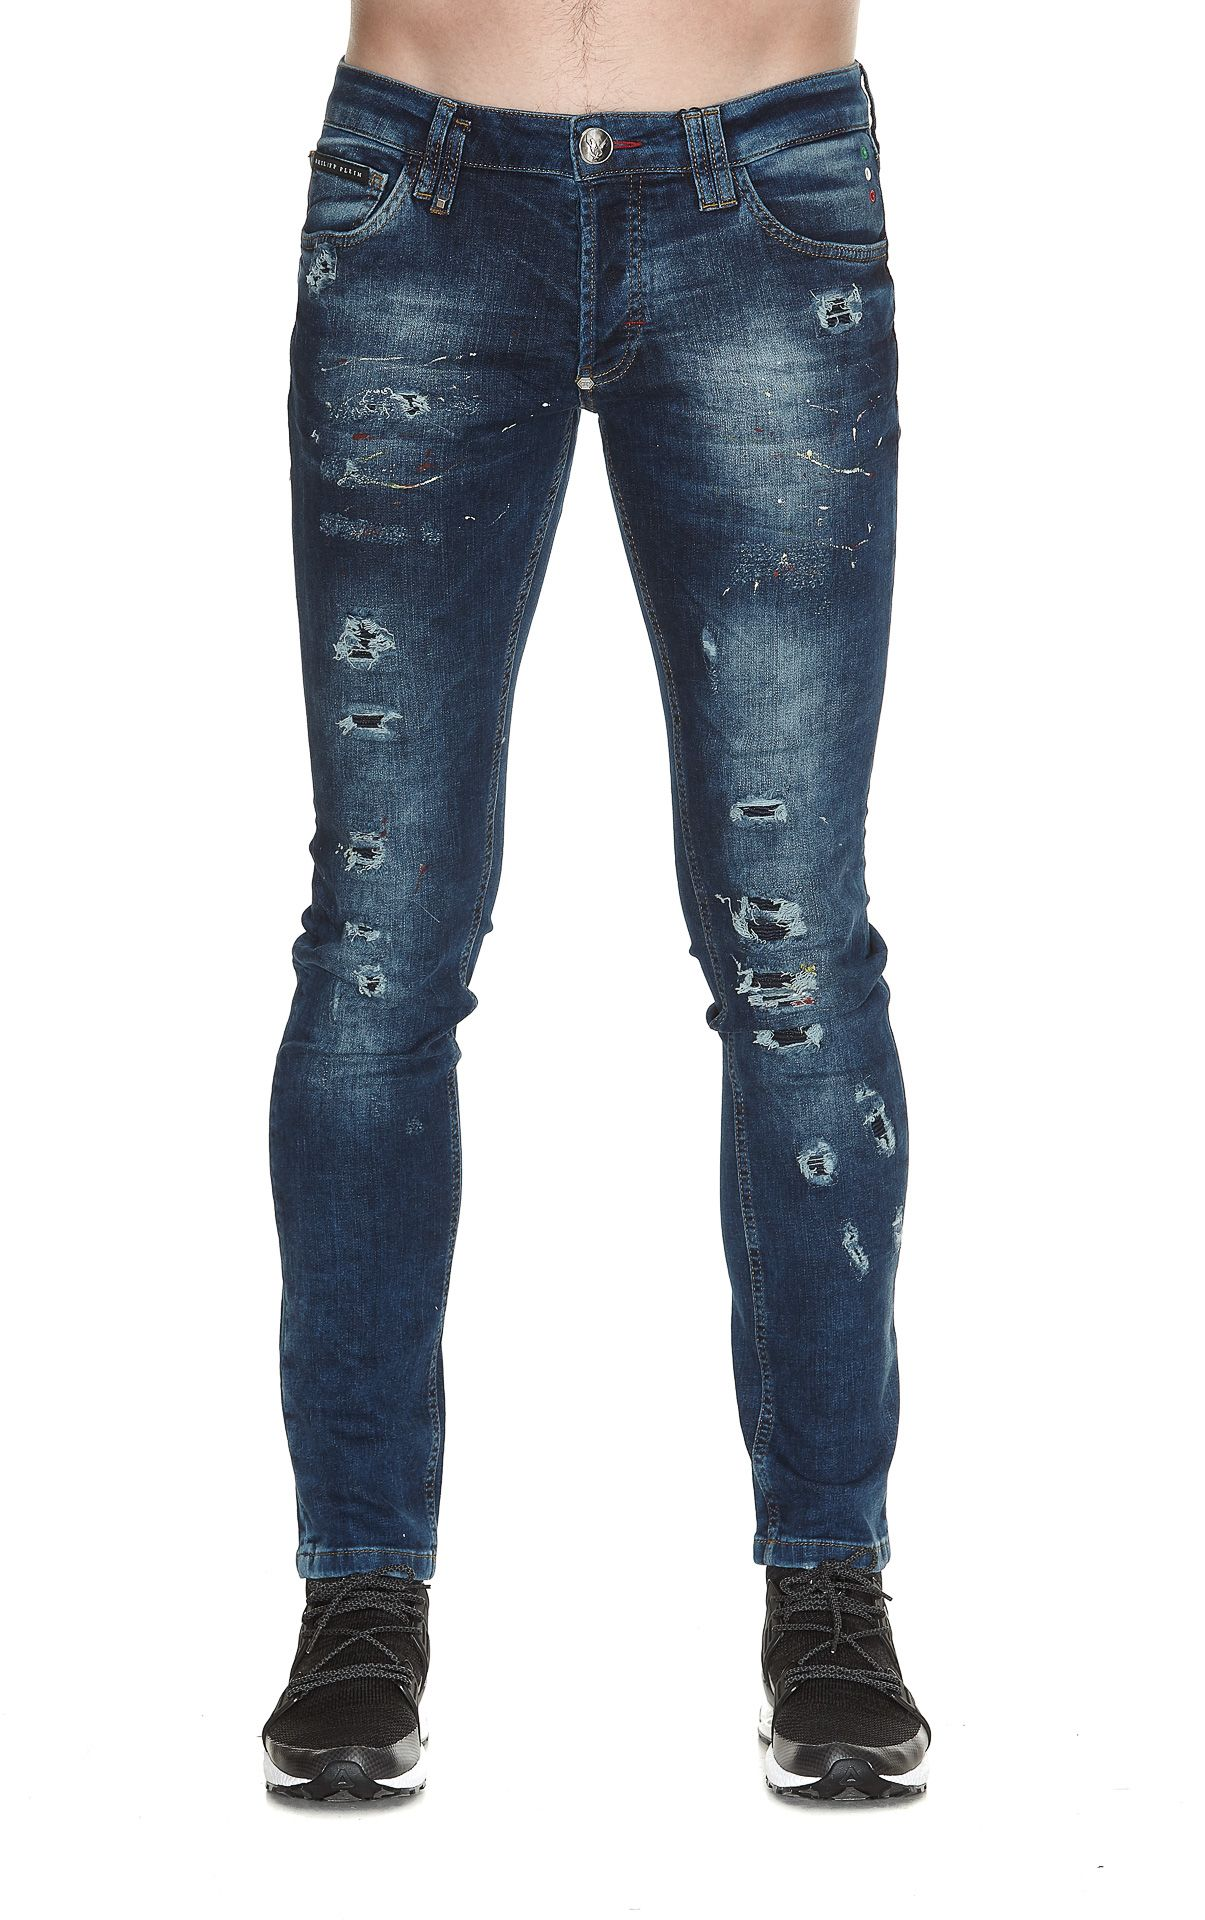 PHILIPP PLEIN STORM IN A TEACUP JEANS